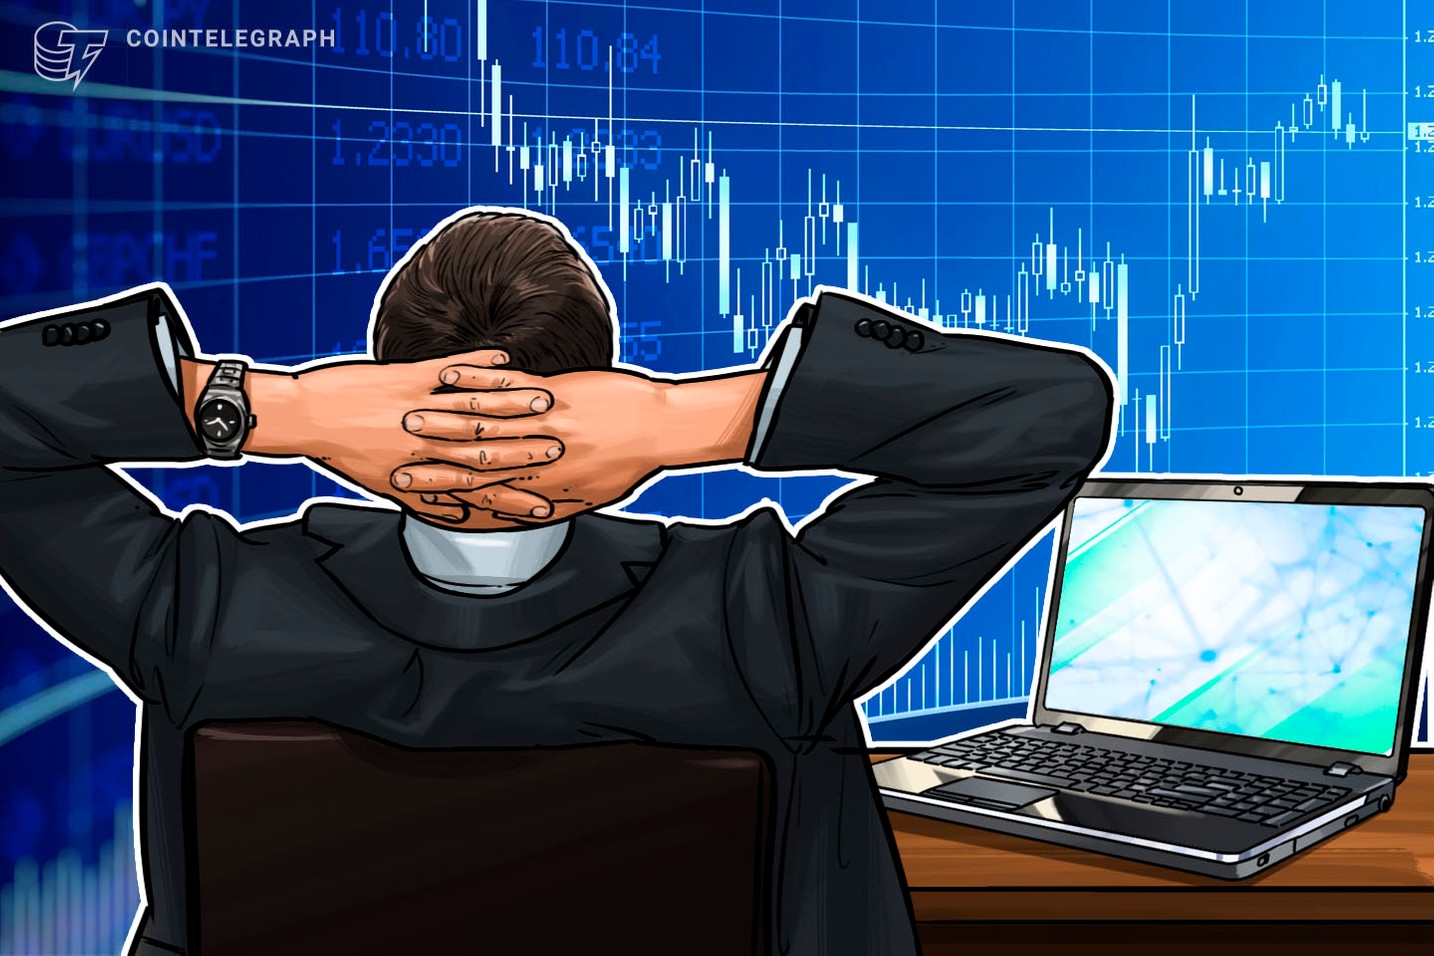 Pro traders added to shorts as Bitcoin price broke $12K, data shows